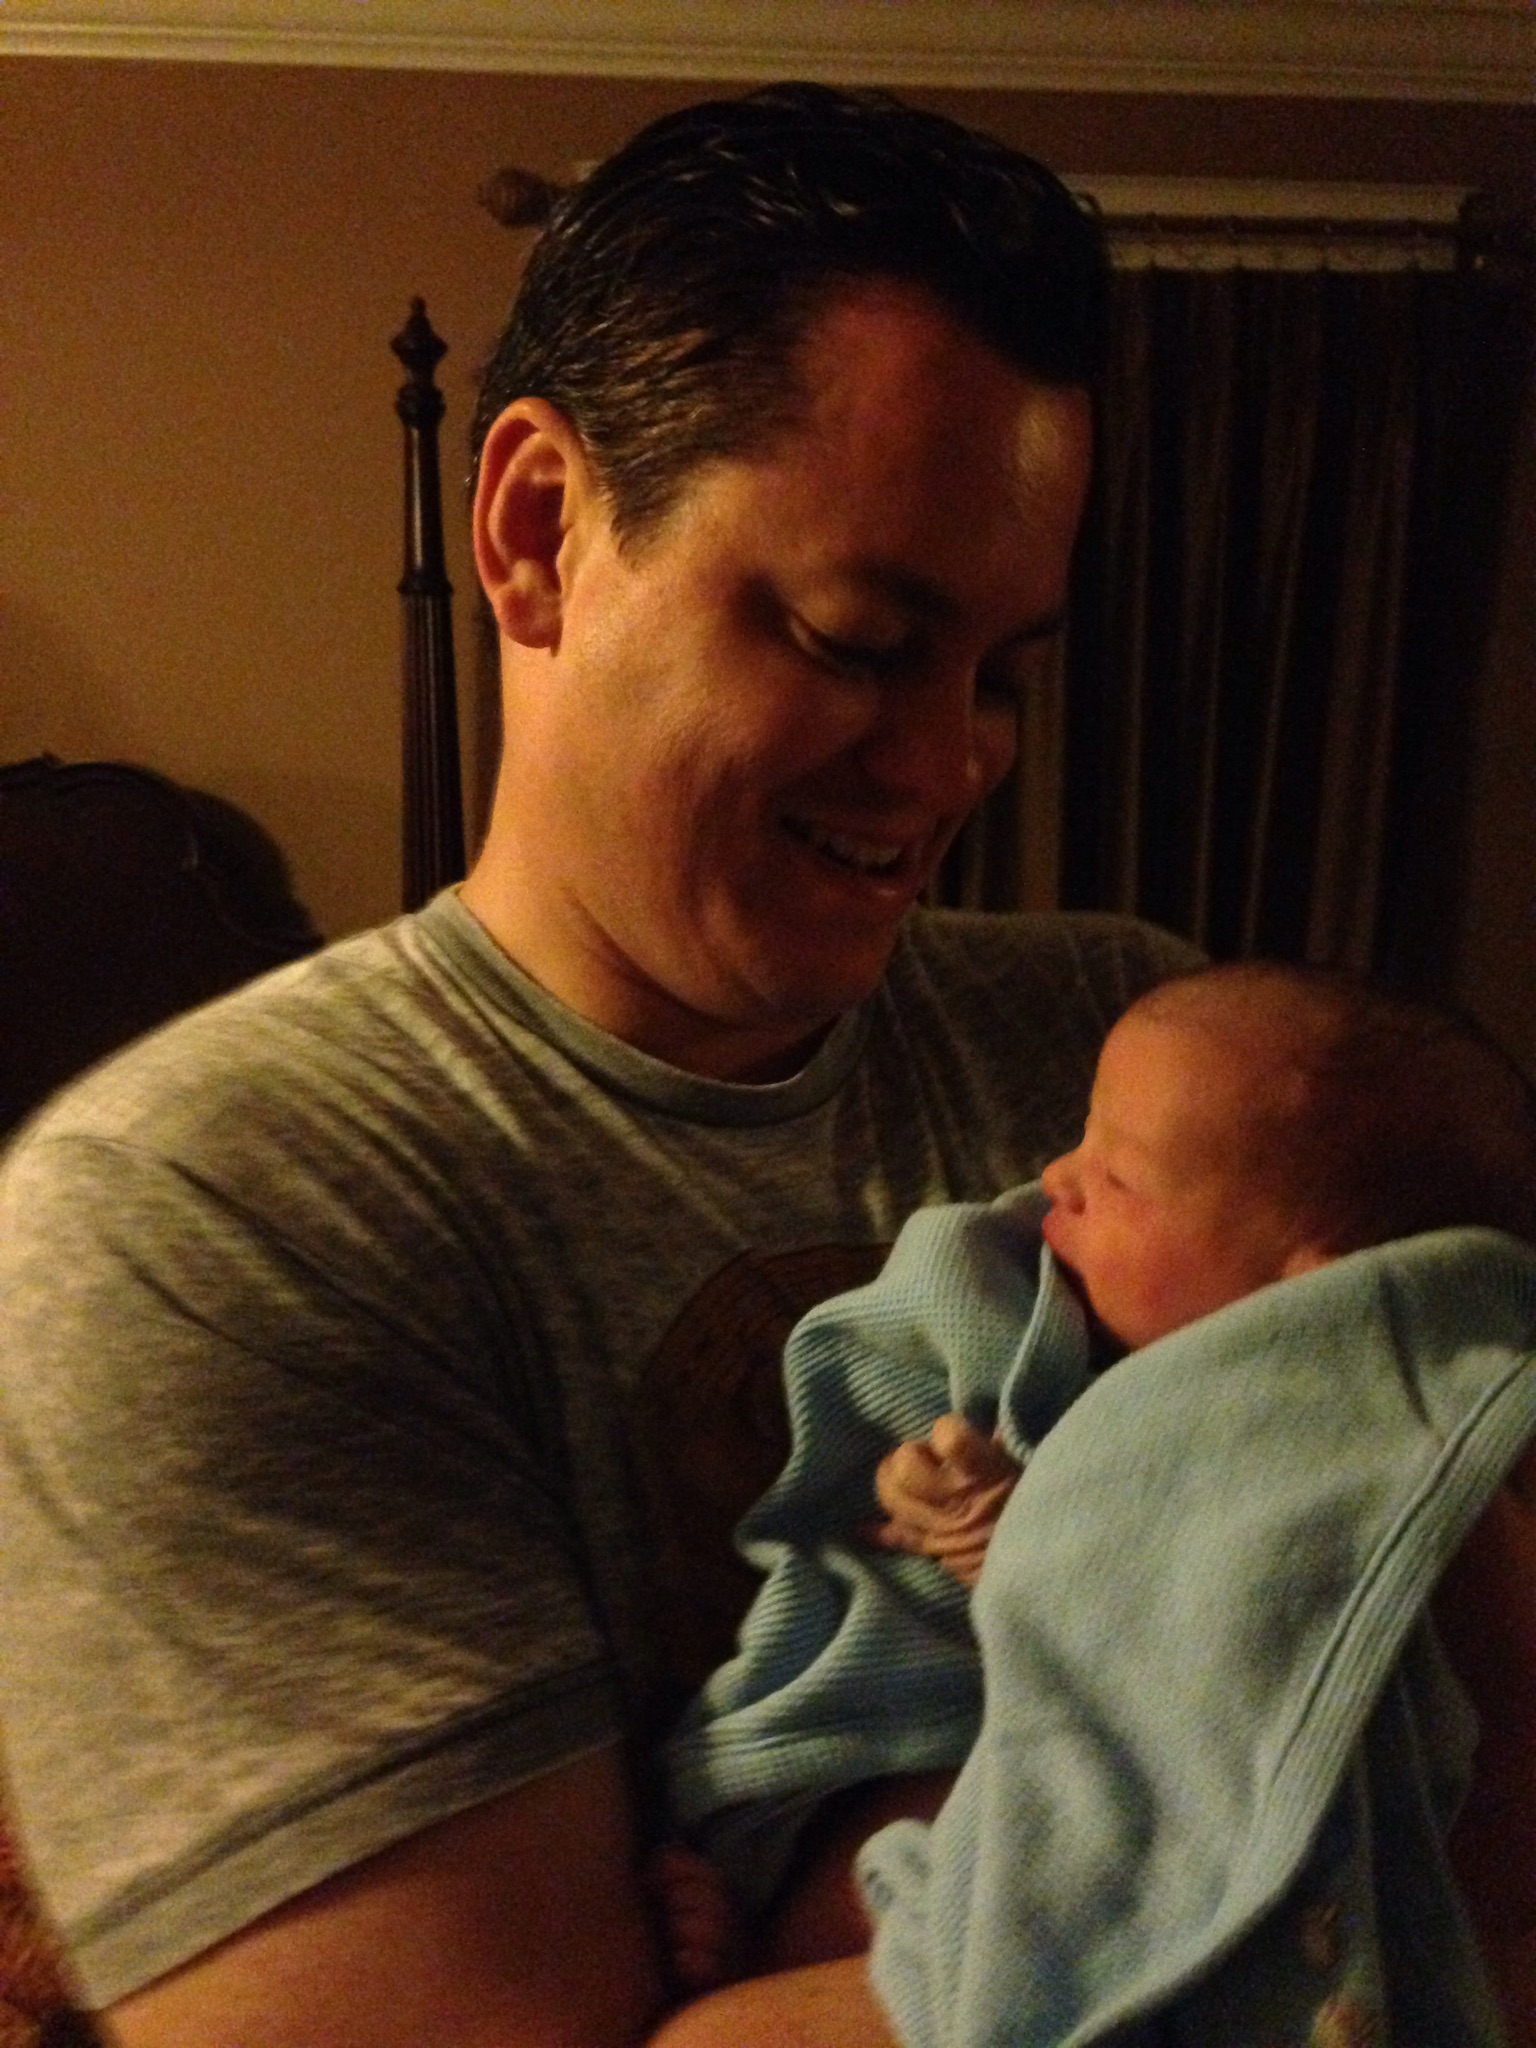 charlie rae young of barefoot birth, please investigate midwife charlie rae young of barefoot birth, homebirth, florida homebirth, home birth, brandon home birth, st pete home birth, tampa vbac, Tampa Bay Birth Network, TBBN, Natural Birth and Baby Expo, Tampa VBAC options, Barefoot Birth, Improving Birth tampa , childbirth education tampa, childbirth ed tampa, lamaze tampa, hypnobirthing tampa, birth boot camp tampa, birth classes tampa, tampa Birth Photographer, Midwife, Florida Midwife, Tampa Midwife, Brandon Midwife, Tampa Newborn photography, tampa maternity photography, brandon photography, brandon newborn photography, breastfeeding, tampa breastfeeding, tampa placenta encapsulation, tampa homebirth, homebirth, brandon home birth, brandon homebirth, tampa home birth, black women homebirth, black women do home birth, black women do breastfeed, black family natural birth,  st pete homebirth, st pete home birth, tampa birth center, st pete birth center, prenatal massage tampa, tampa massage therapist, tampa craniosacral therapy, tampa doula, brandon doula, brandon postpartum doula, tampa full spectrum support, the fourth trimester, breastfeeding support tampa, breastfeeding support clearwater, breastfeeding support st pete, birth center tampa fl, birth center brandon fl, birth center st pete fl, birth center clearwater fl, interviewinga midwife, midwife questions, questions for a midwife, interviewing a birth center, kim verbarg, kimberly verbarg, labor of love, breath of life birth center, labor of love birth center, sweet child o mine birth center, sweet child birth center, birth center of st pete, tampa midwife ,  jessica willoughby, westchase midwife, clearwater midwife, plant city home birth